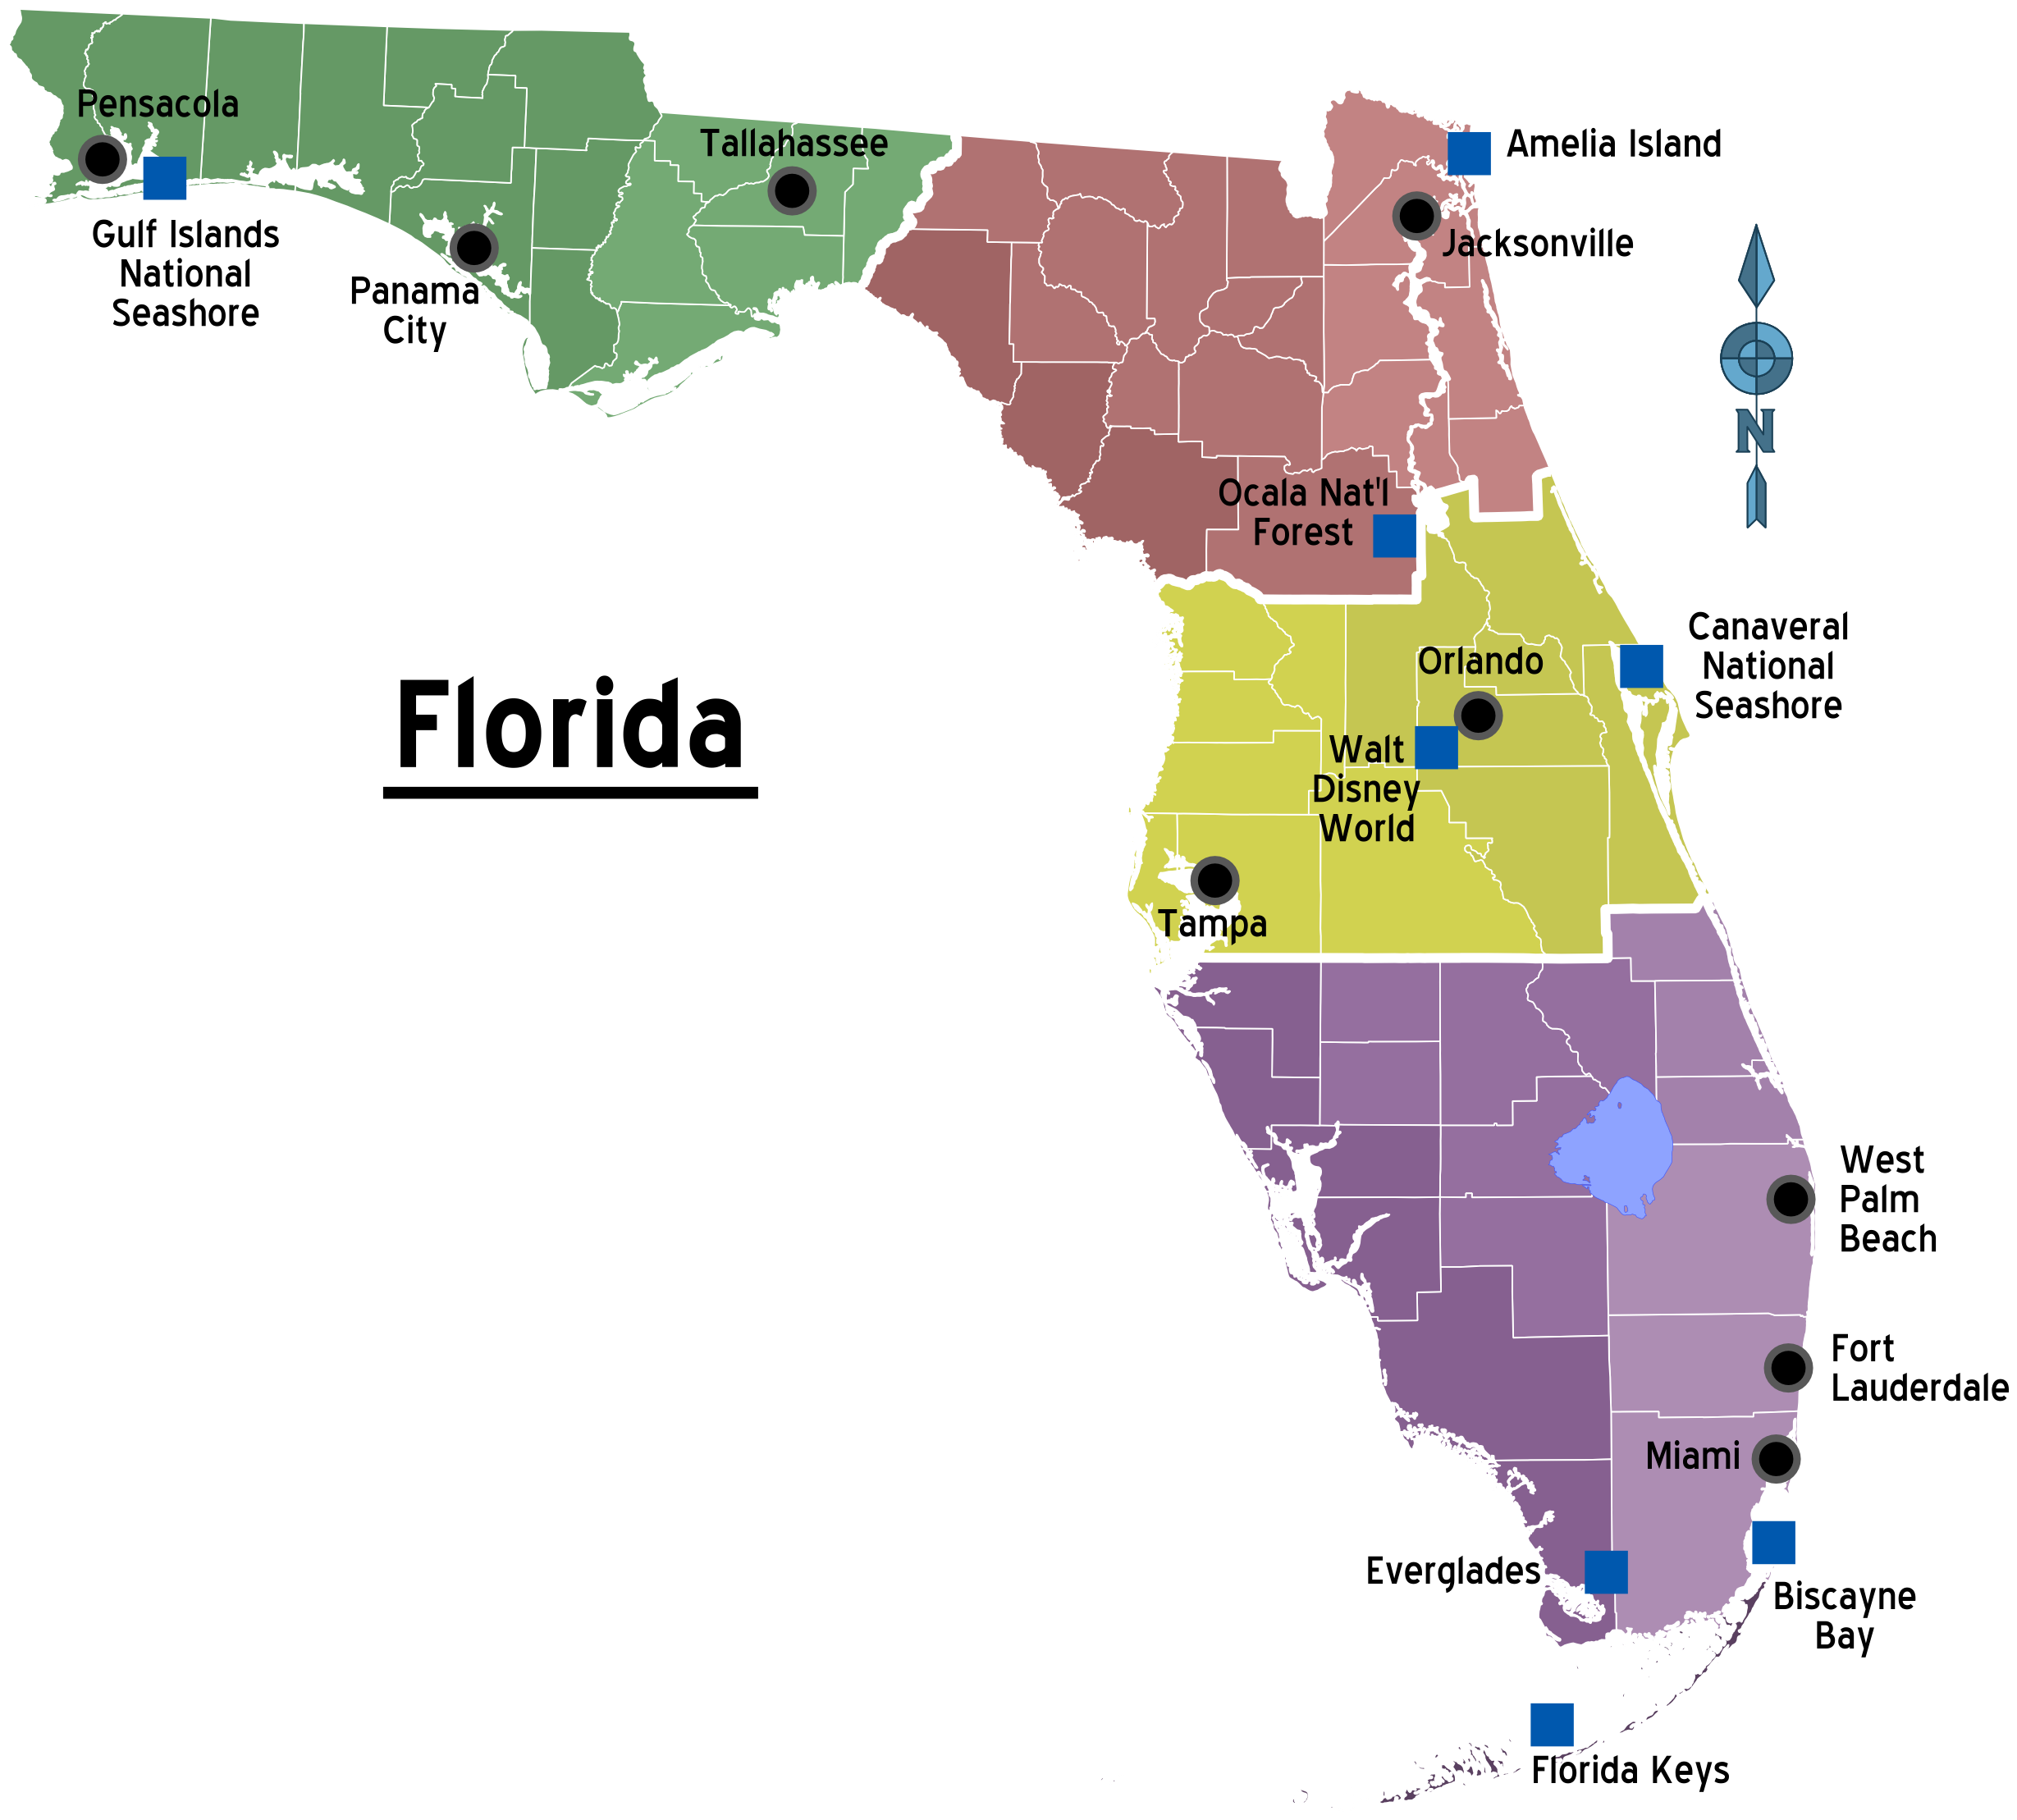 FileMap Of Florida Regions With Citiespng Wikimedia Commons - Major cities in florida